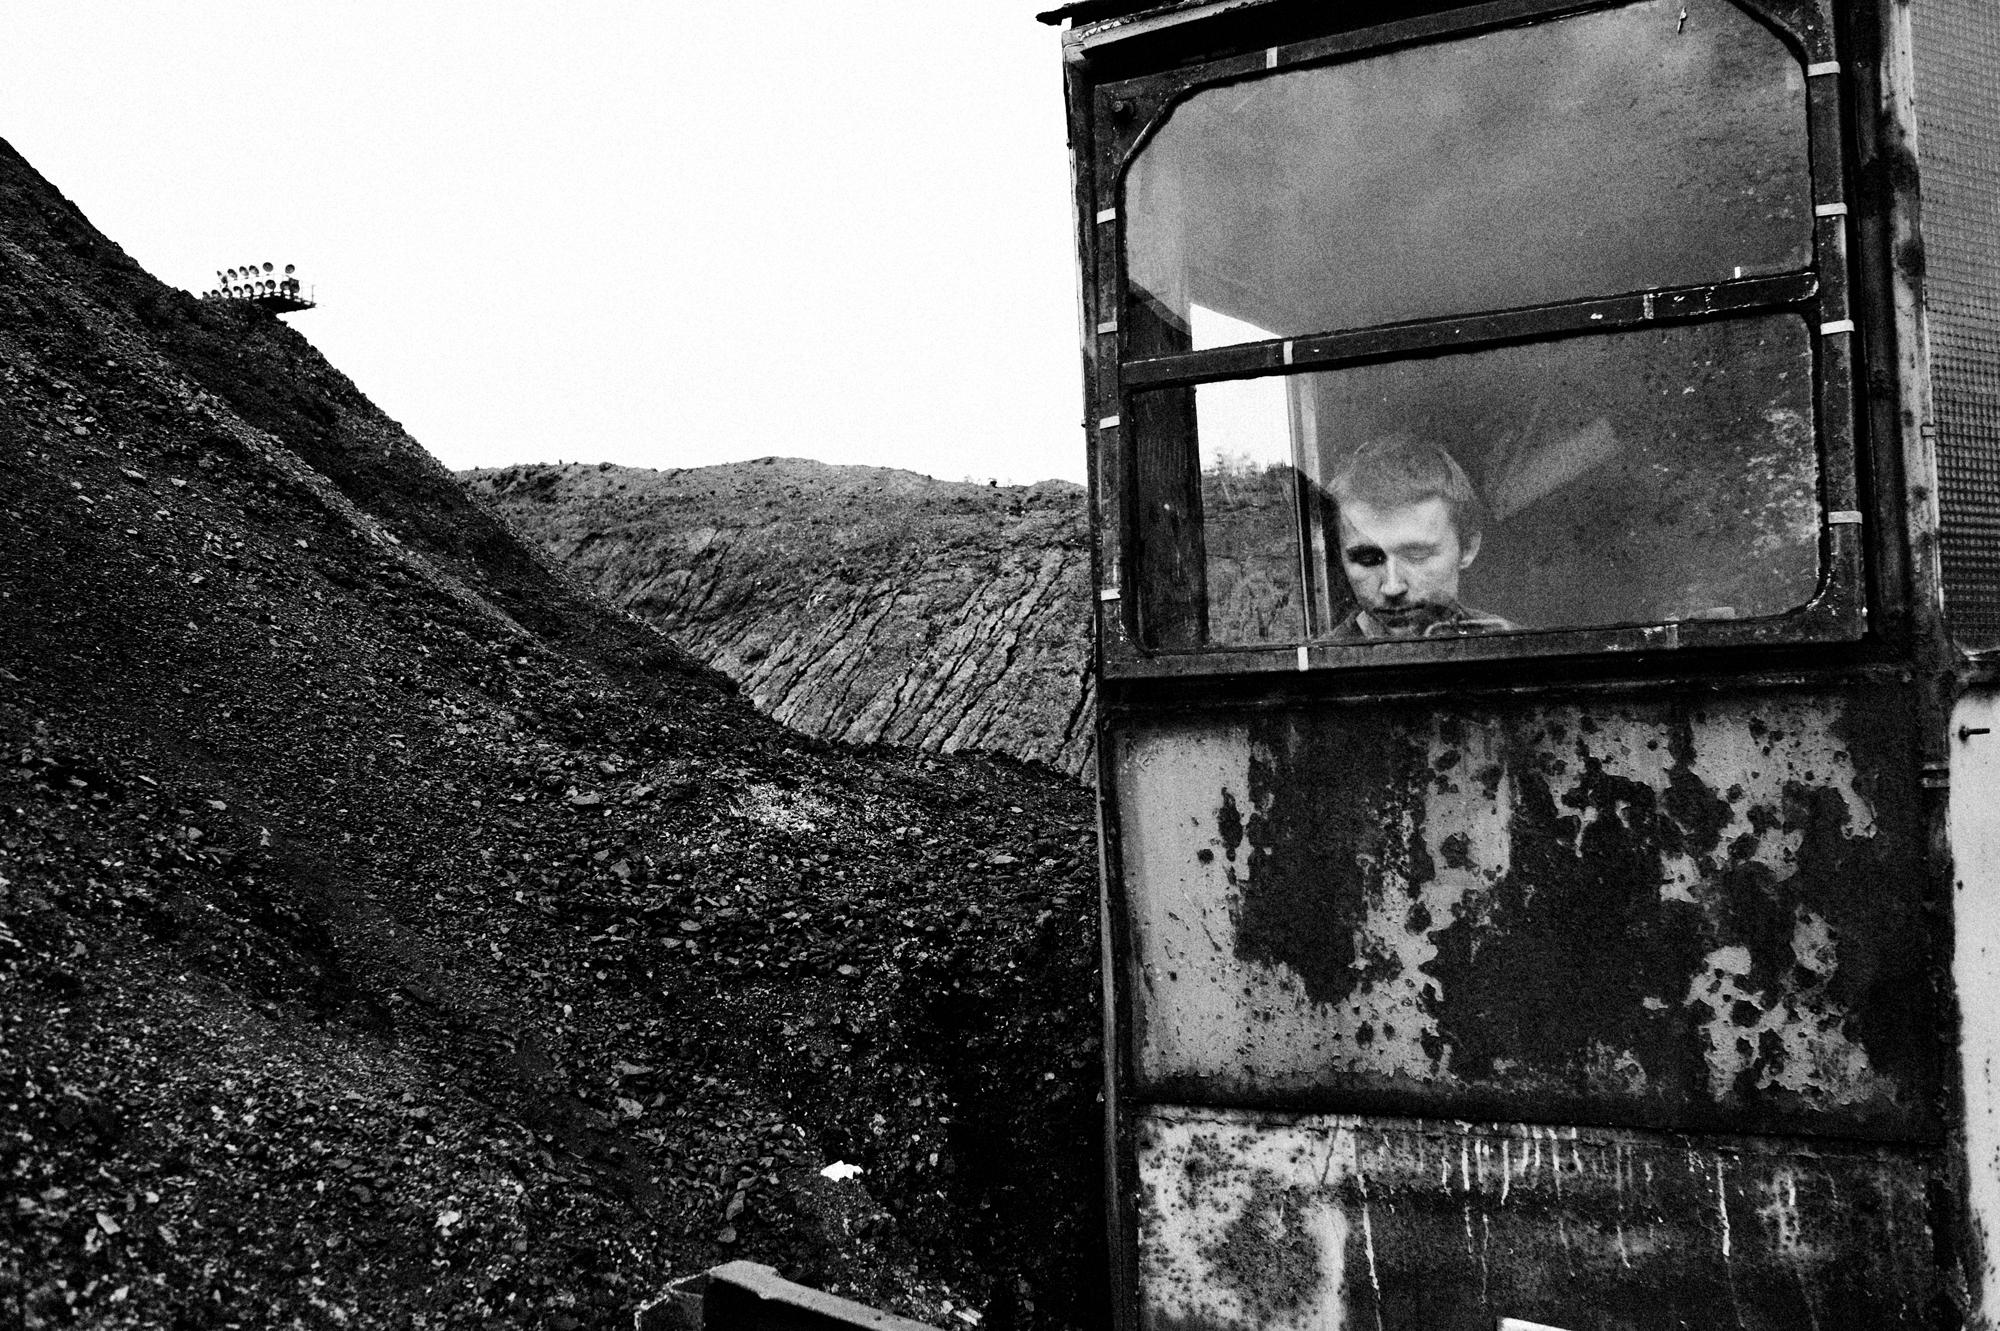 "Poland, Silesia Region, Zabrze. September 2009. Sosnica- Makoszowy Coal Mine. Portrait of a miner at work. Health and life of miners are often at risk. Sosnica- Makoszowy Coal Mine arose from merger of two mines, coal mine ""Sosnica"" in Gliwice and coal mine Makoszowy in Zabrze. Levels of mining can be found at a depth between 530 and 930 m. The ability of mining amounts about 12 000 tons per day, the mining area amounts 28,4 km2.. Nowadays 60% of polish energy comes from burning black coal, the biggest enemy of our climate. Poland is not one of the biggest countriest and doesnt have big population but contributes to climate change and is in first 20 countries that produce biggest amount of CO2. in 2004-2005 polish emmisions increases for more than 2 mln tones Whith China , Australia and Republic of South Africa , Poland belonges to countries that are most dependent on coal. Only 3% of polish energy comes from climate-friendly sources. Poland is Eupean leader in power industry energy-consuming . (Polish power industry consumes biggest amount of energy to produce energy)."